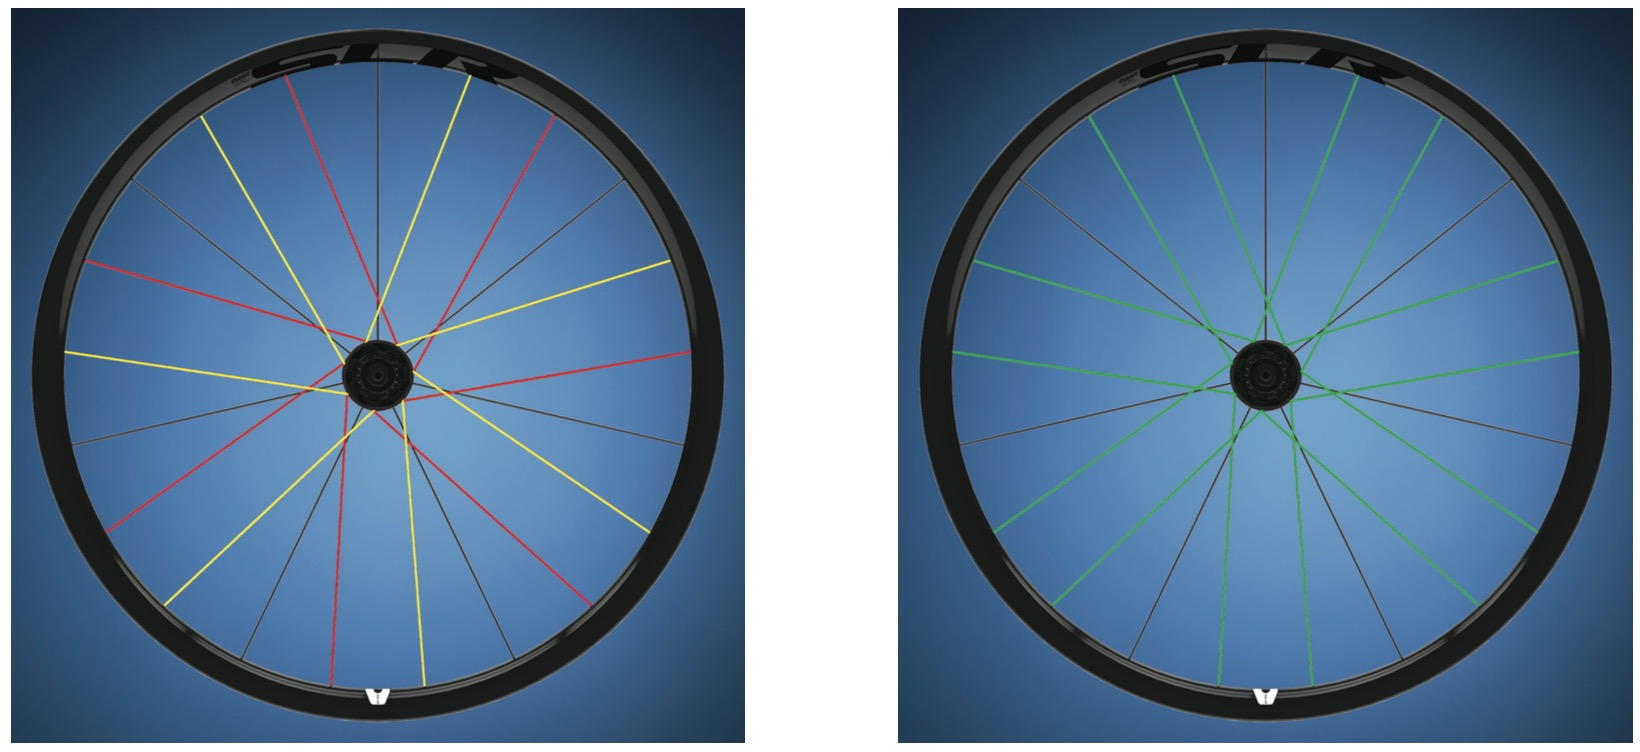 Dynamic Balanced Lacing: (Left): Static state - While in a static state, the pulling spokes (red) and pushing spokes (yellow) have slightly different tensions that help increase durability. (Right): Pedaling state - As the wheel transfers into a dynamic state under the rider, the pulling and pushing spokes balance out, providing optimal stiffness for power transfer.